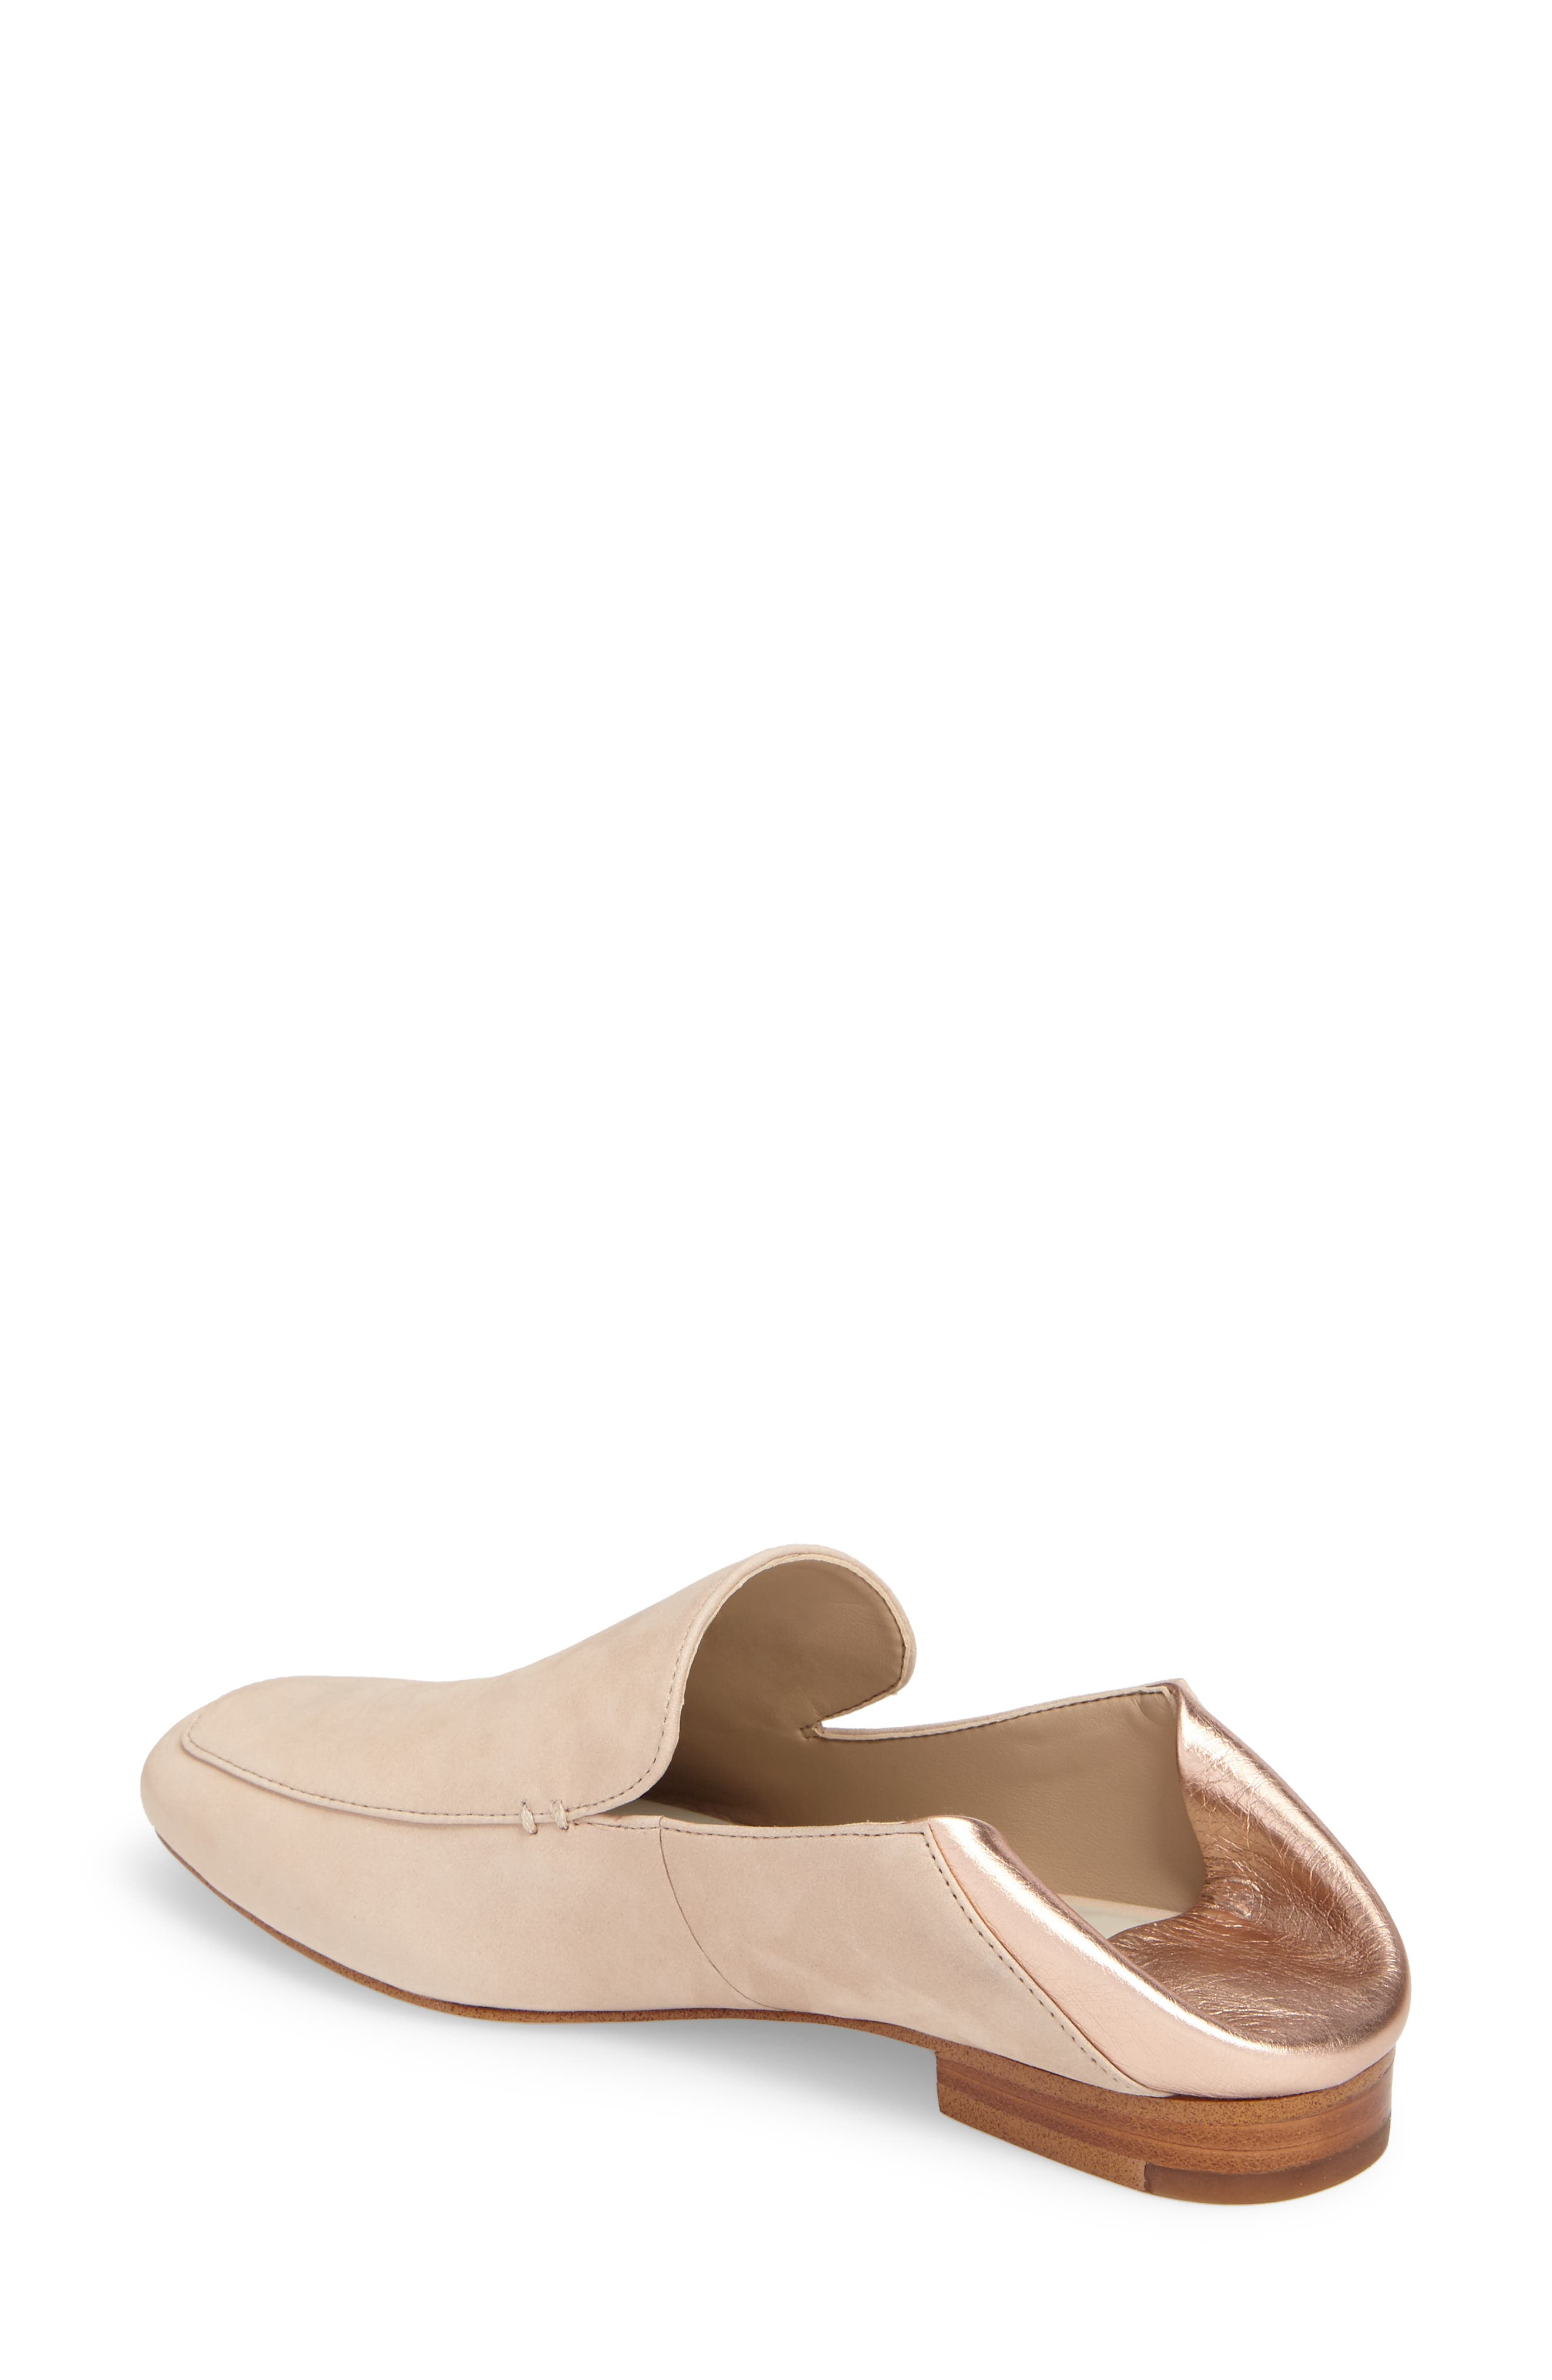 Faun Drop Heel Loafer,                             Alternate thumbnail 2, color,                             Cipria Leather